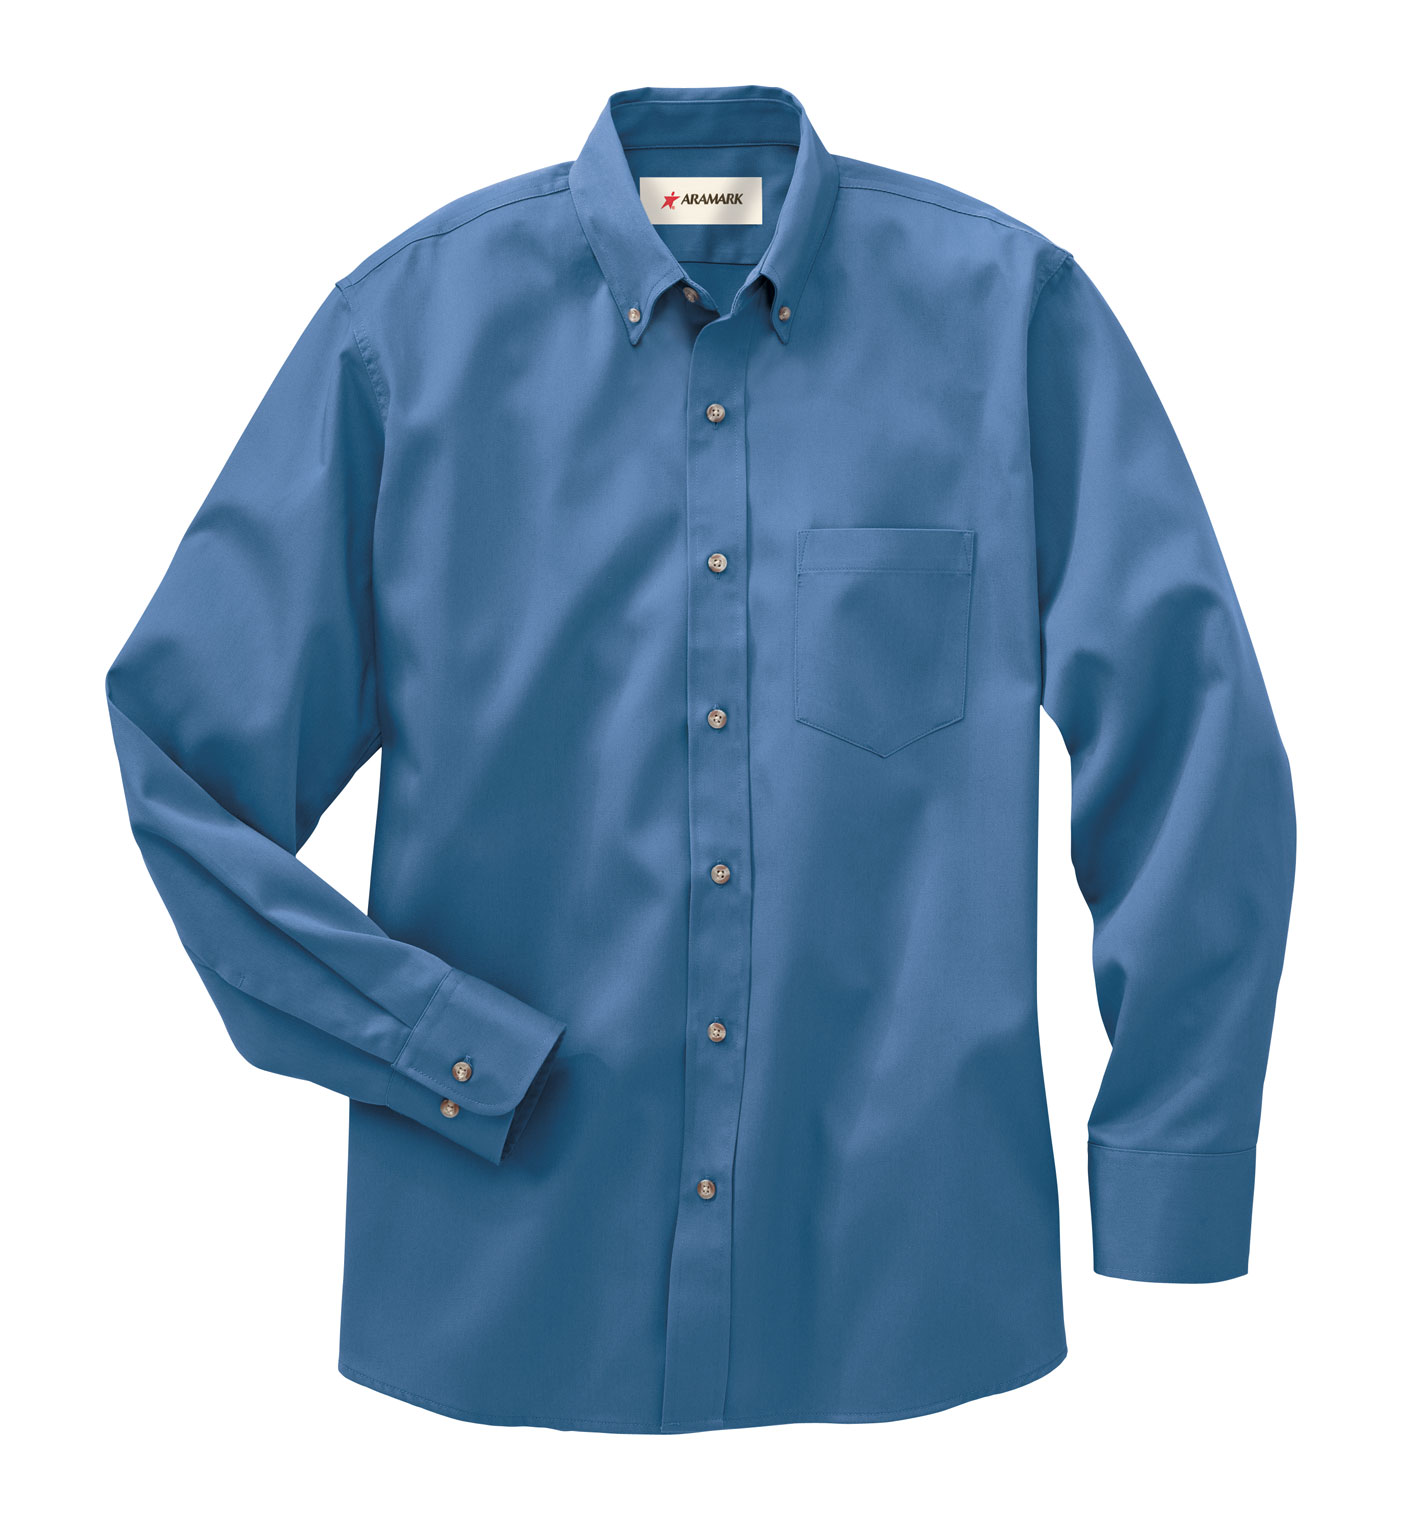 Mens Blue Work Shirts